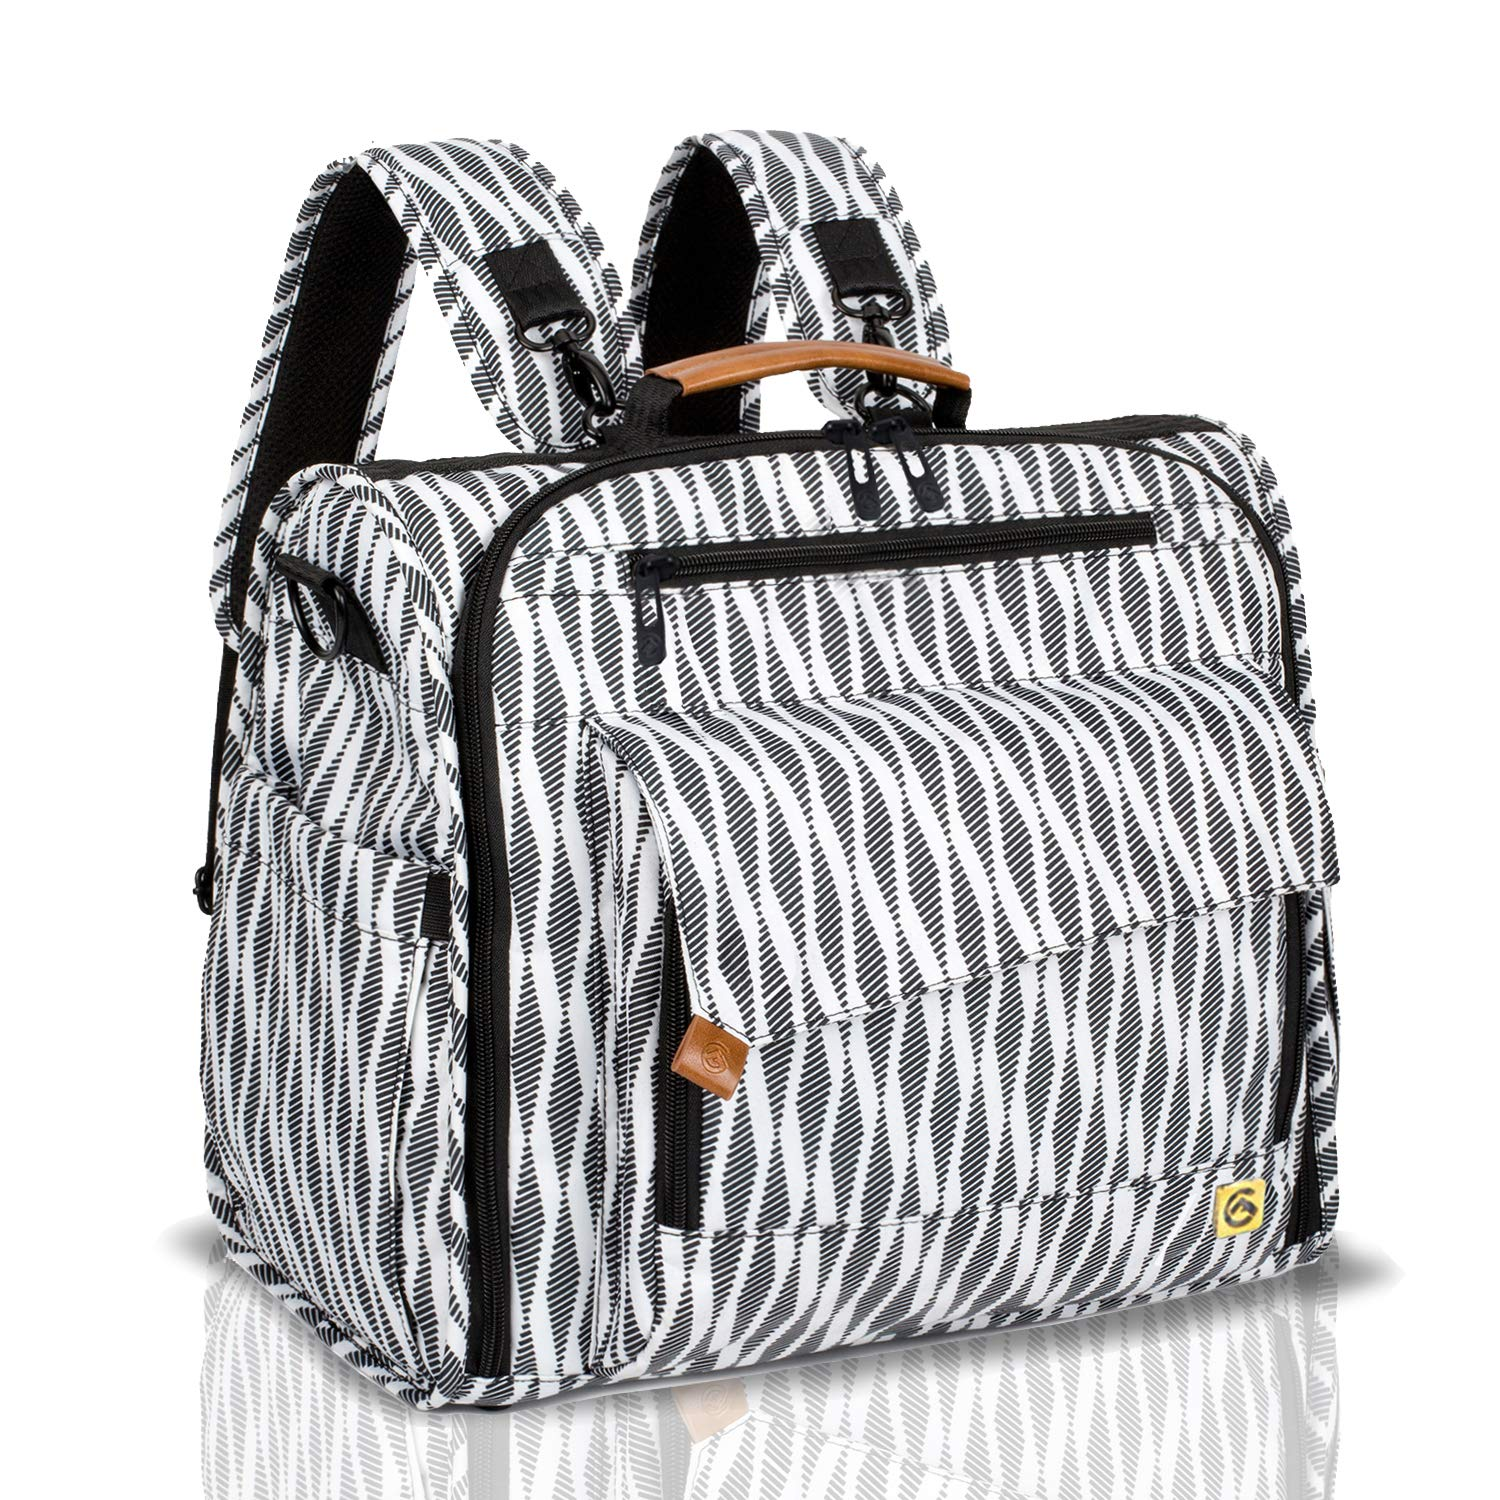 Top 9 Best Small Diaper Bags Reviews in 2021 14